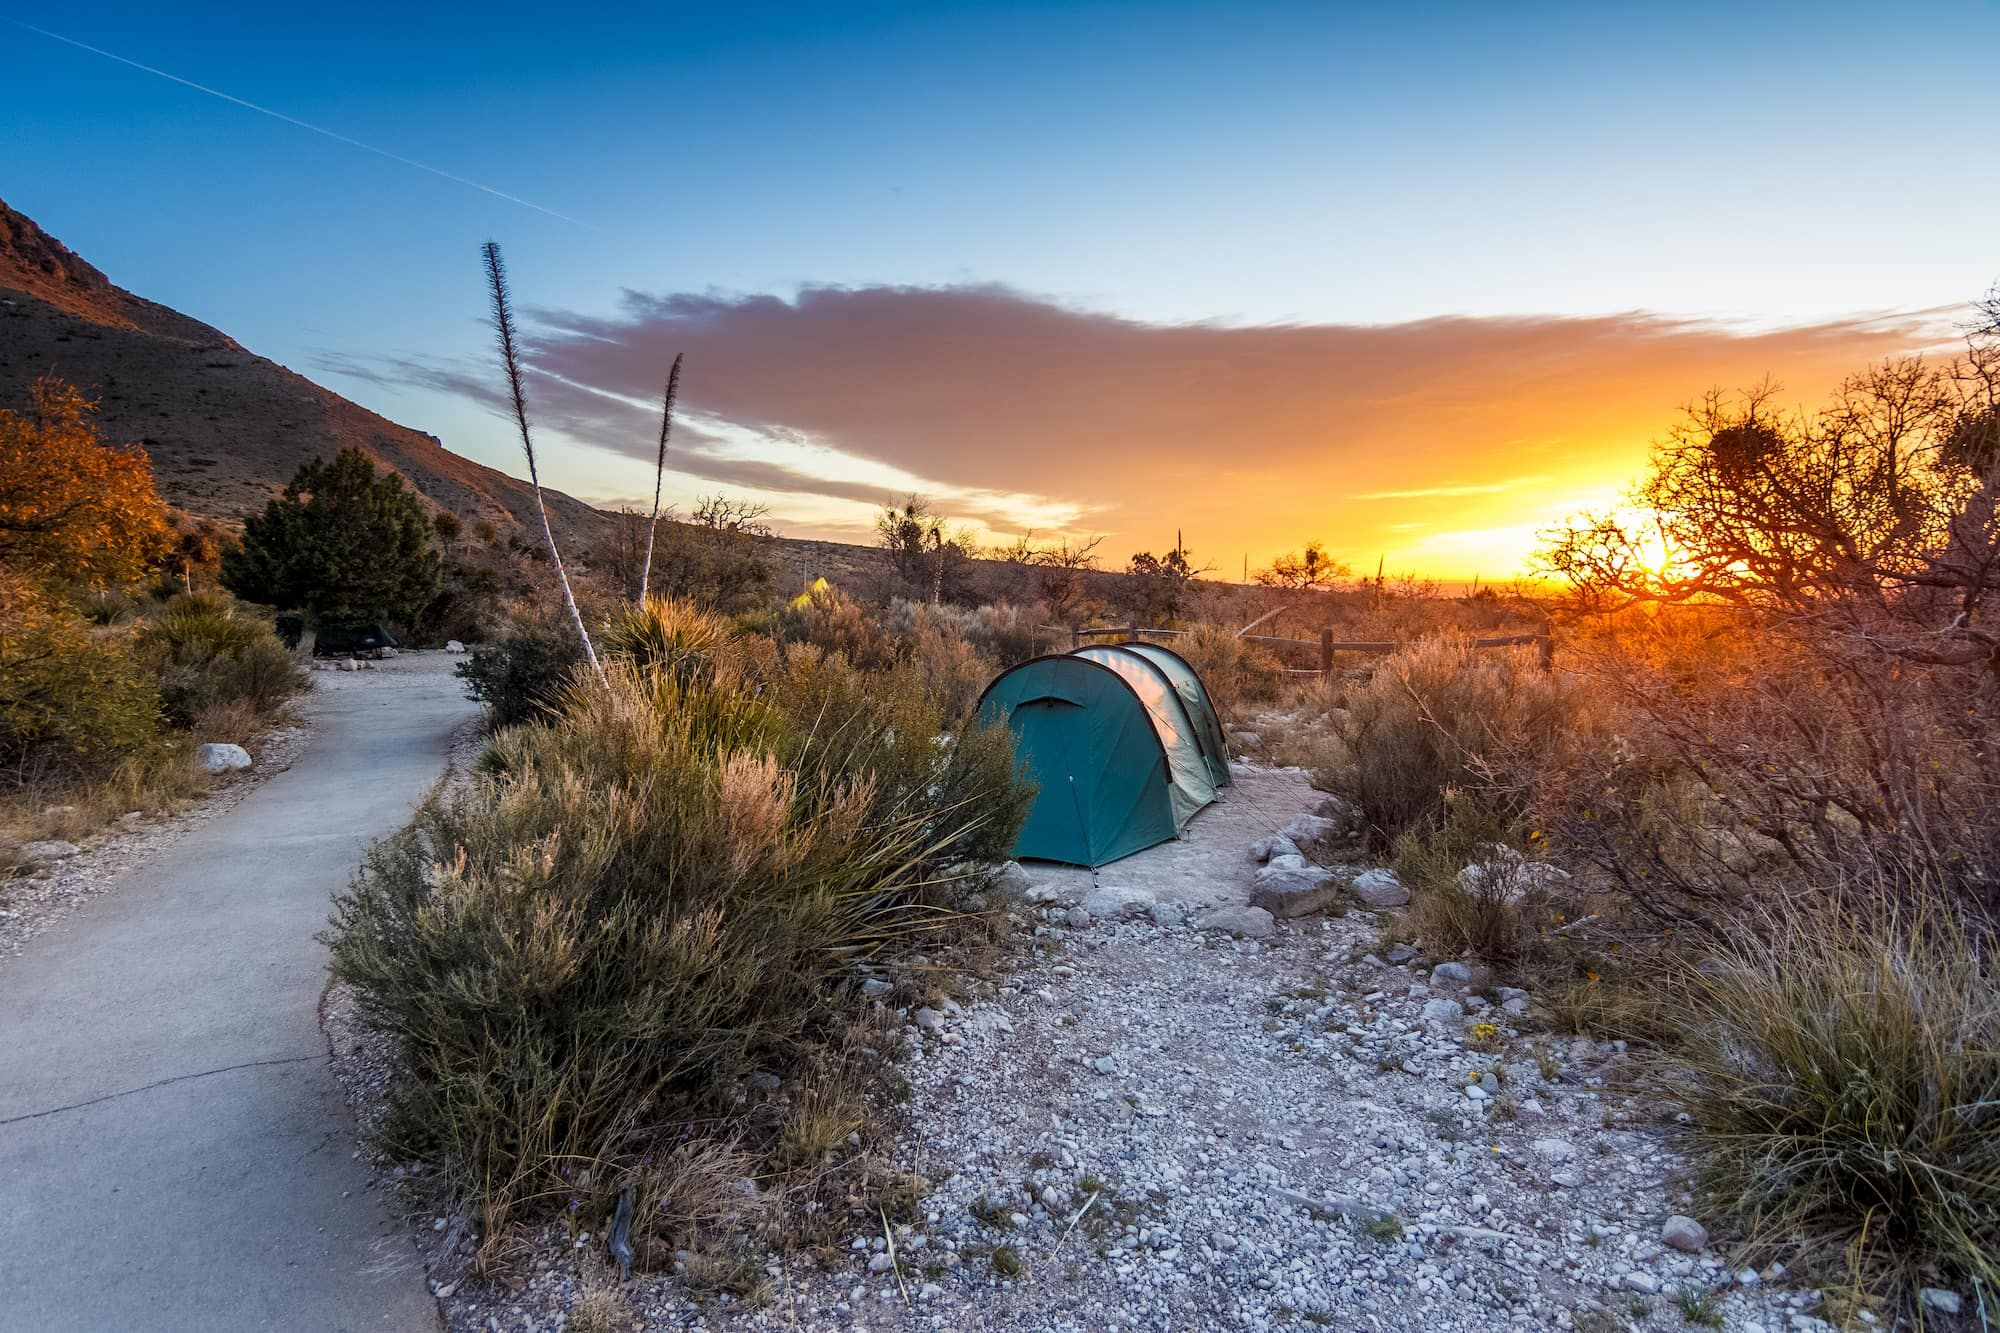 7 big texas adventure spots with camping nearby